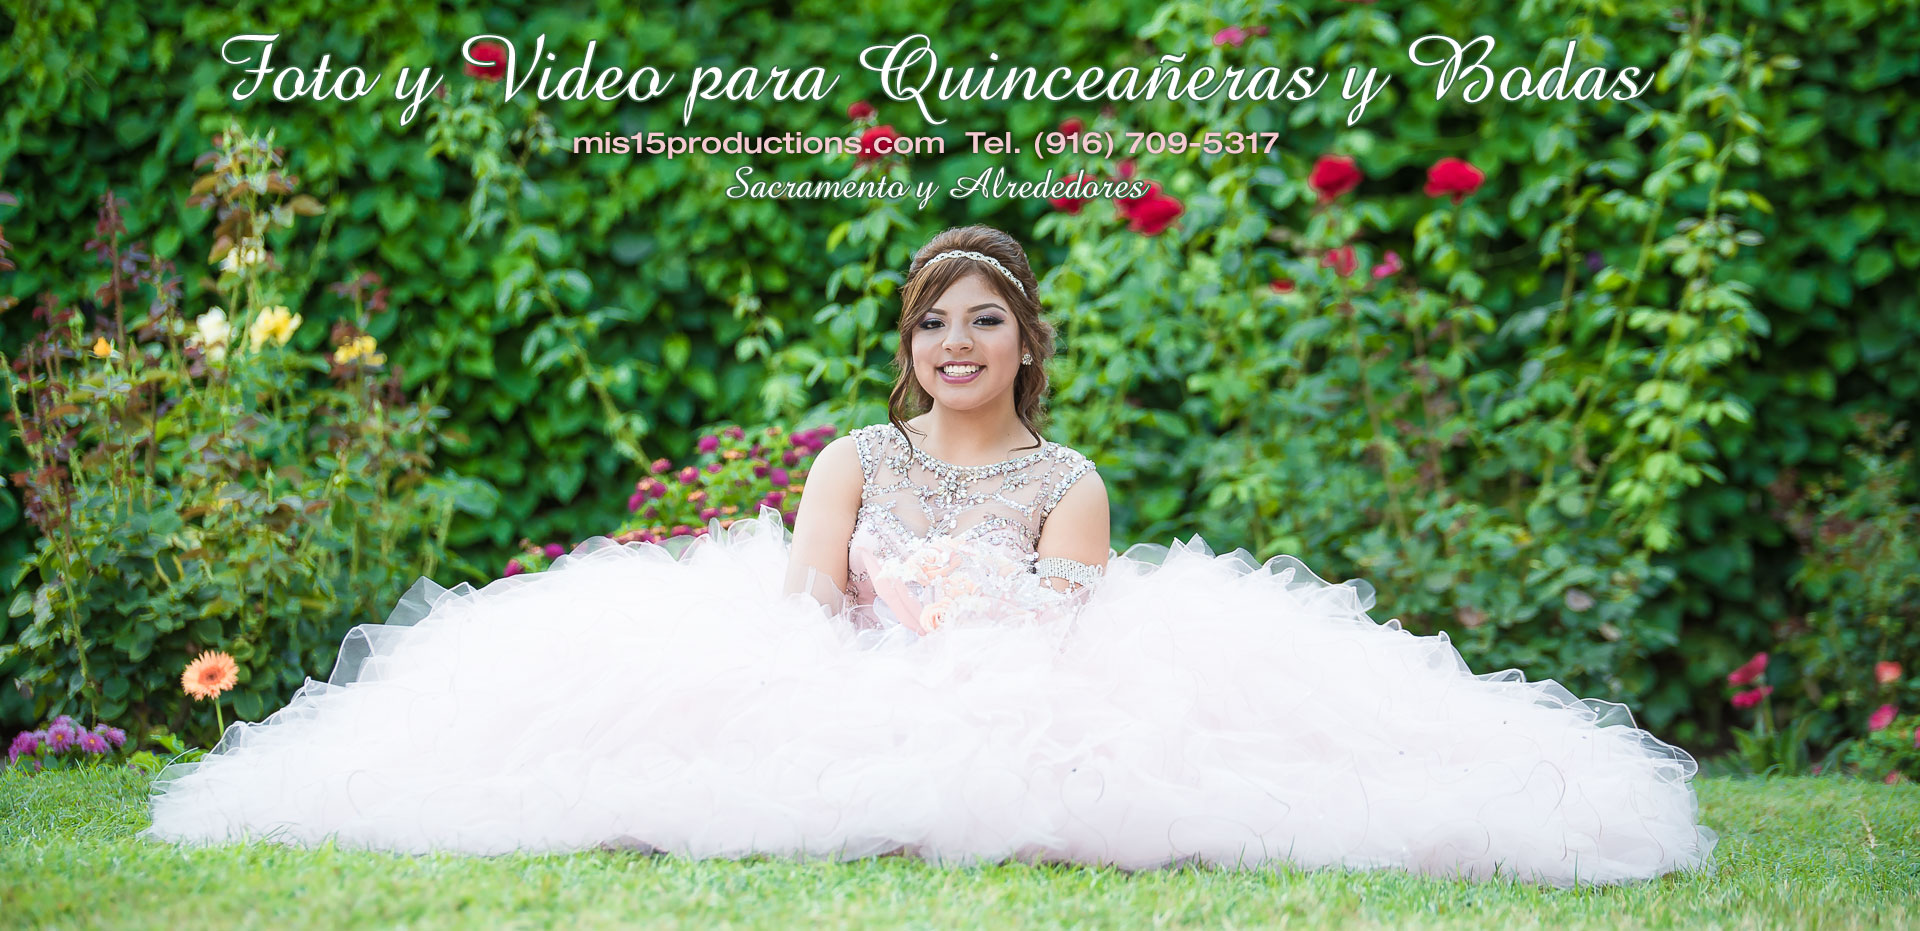 foto video 15 anos quinceanera sacramento